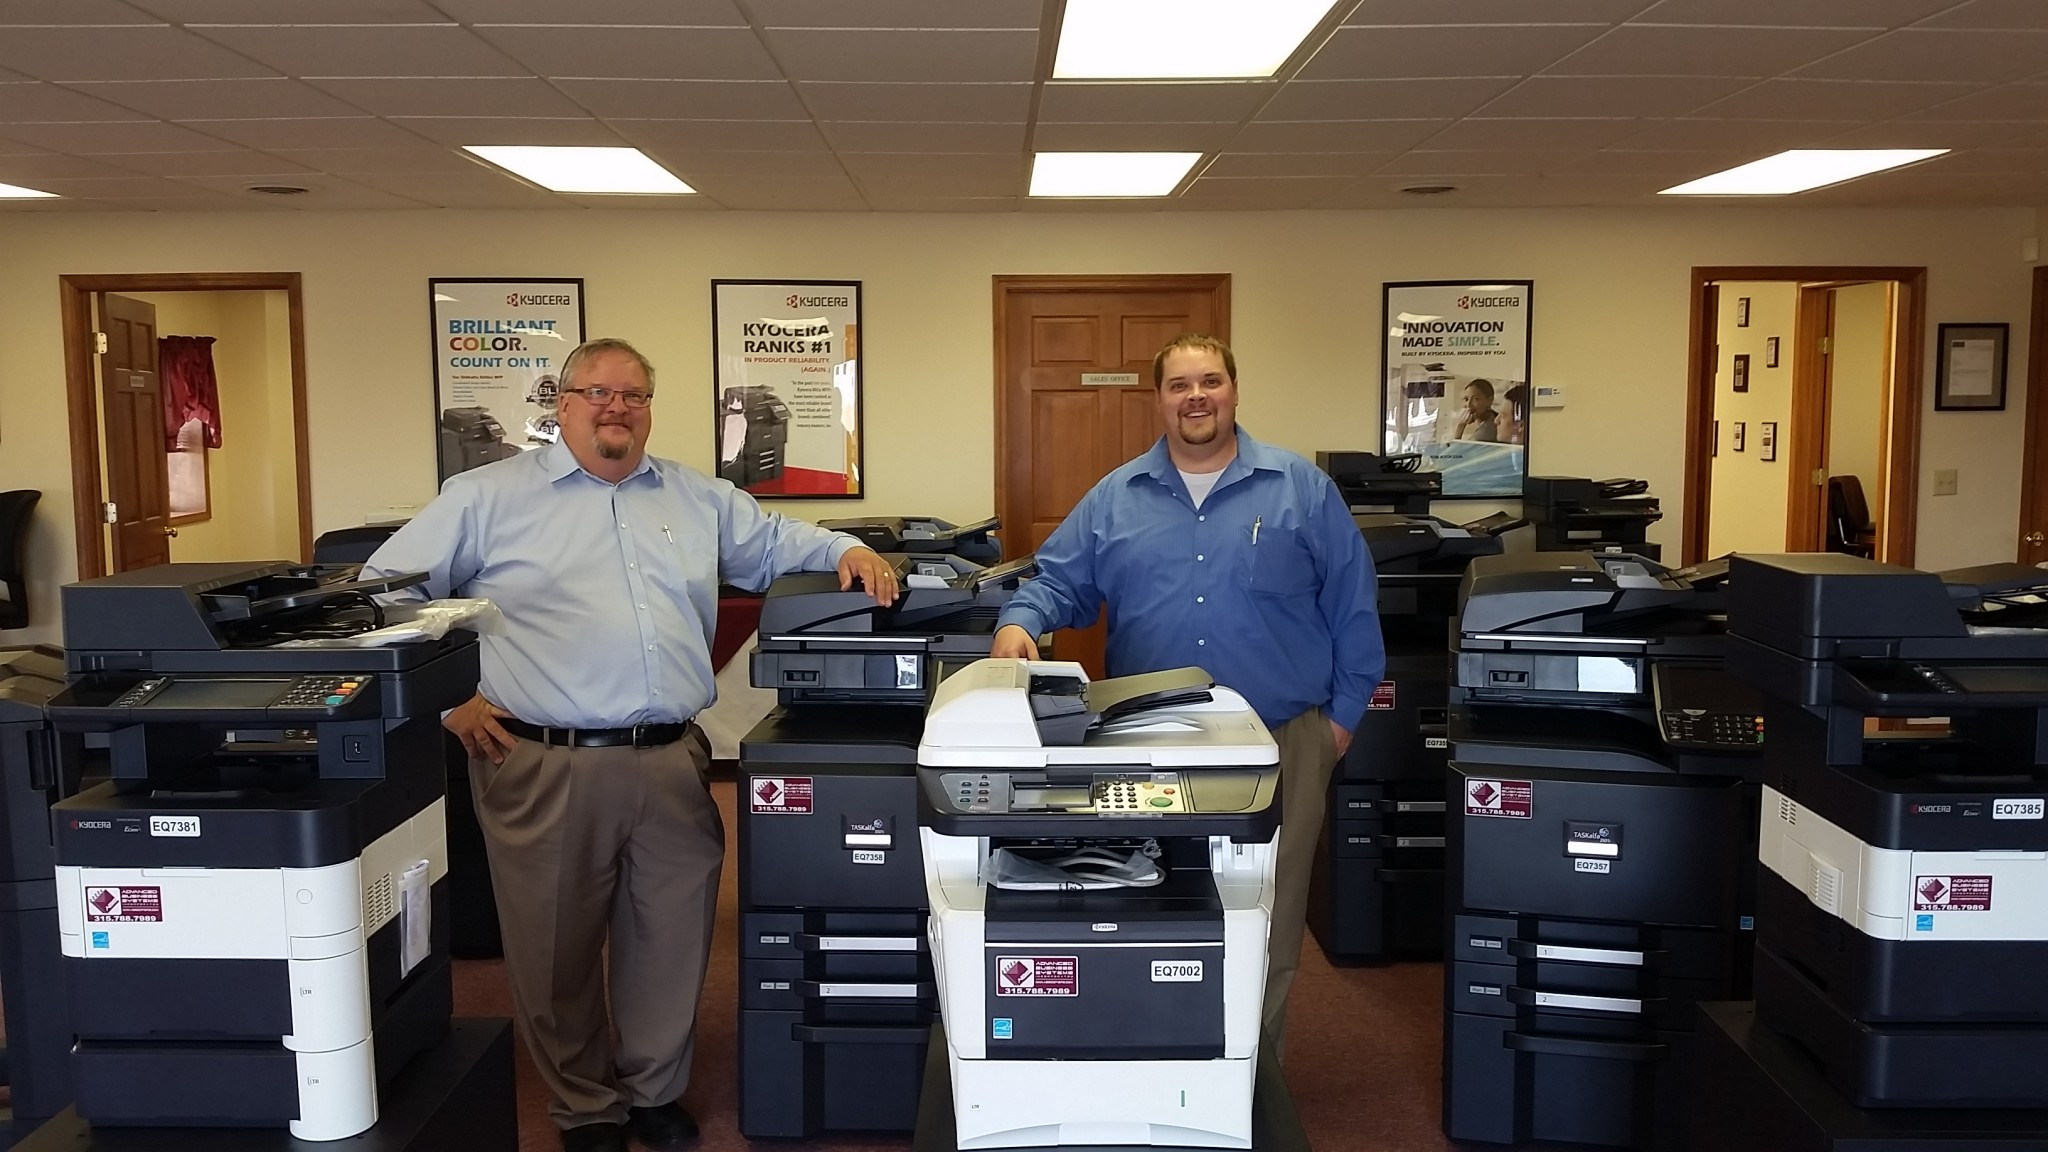 Ed and Ryan Jones, Advanced Business Systems, Watertown/Syracuse NY